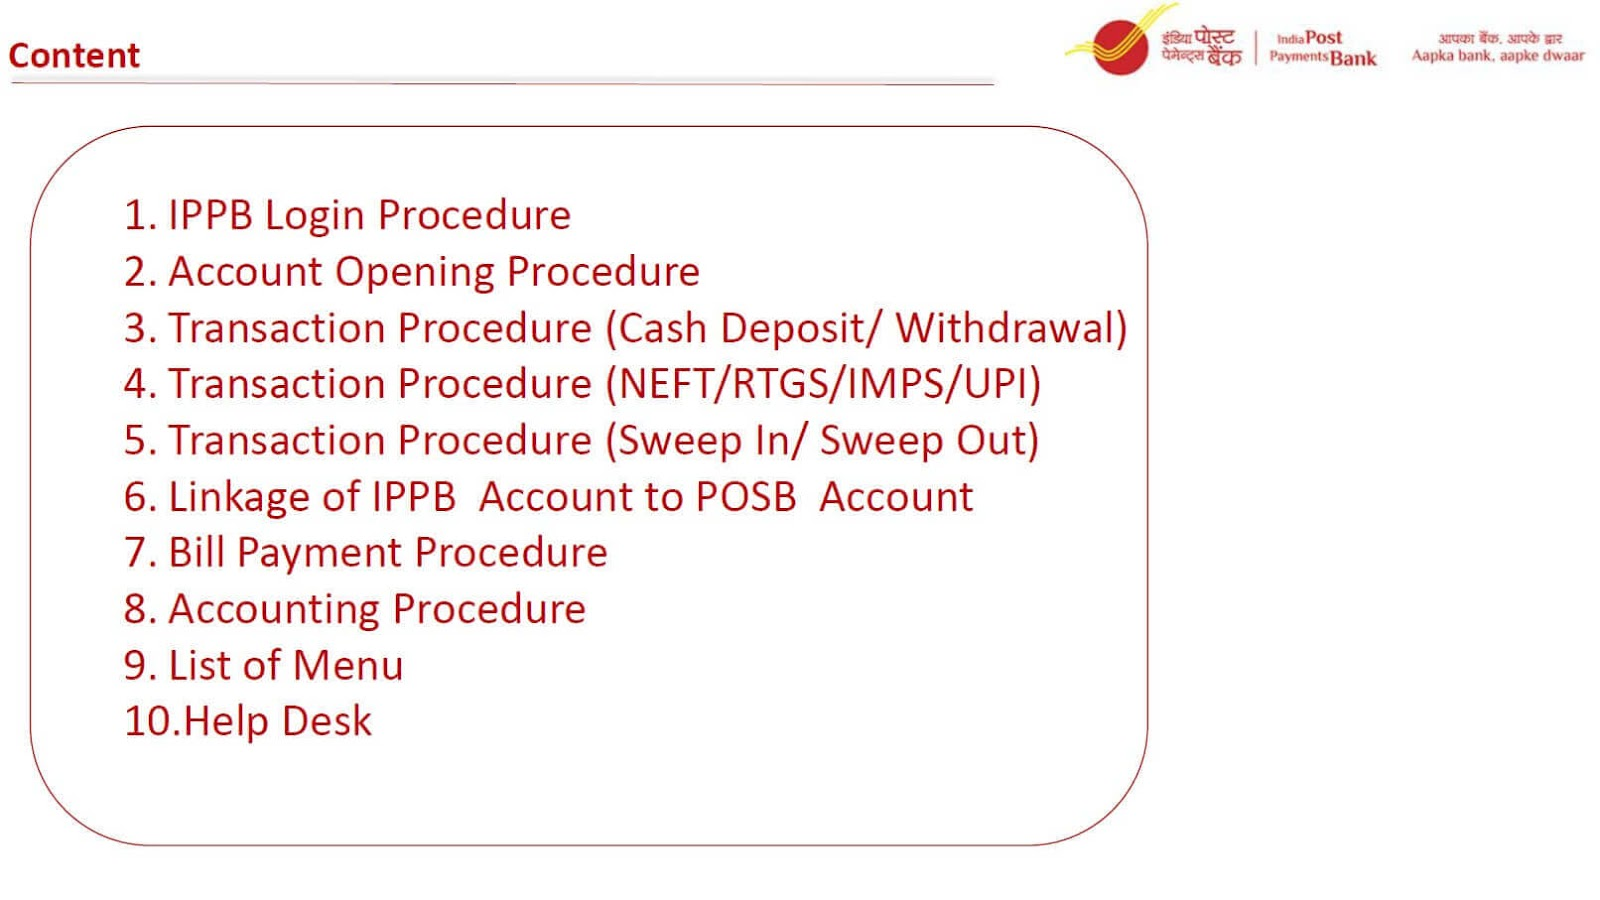 India Post Payments Bank Operating and accounting procedure for Counter Assistant